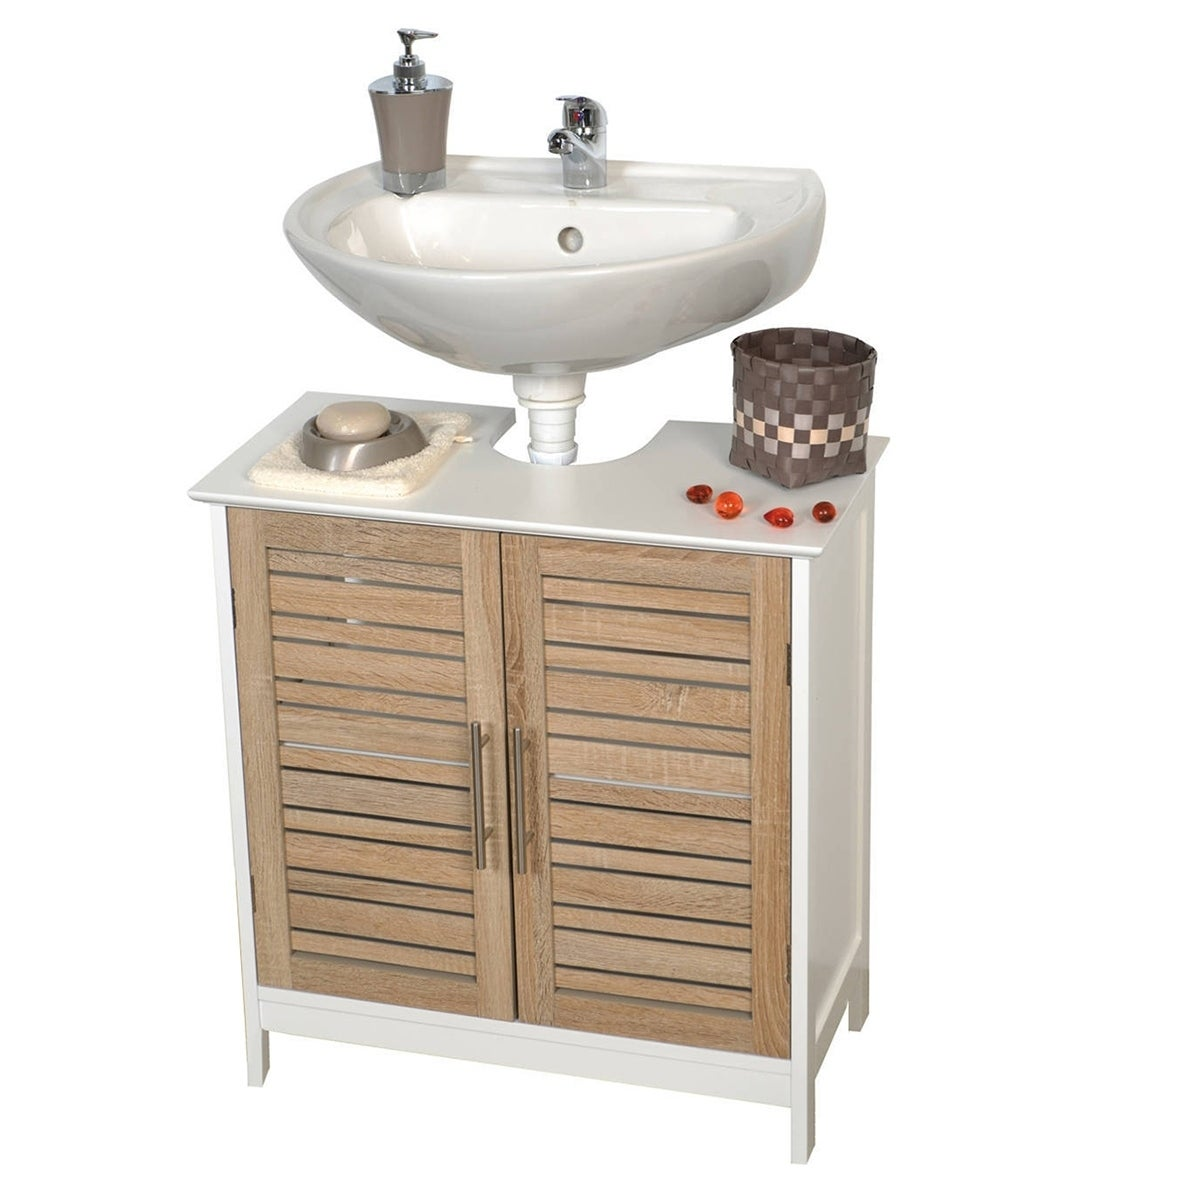 Shop Non Pedestal Bath Under Sink Vanity Cabinet Stockholm Oak Overstock 17000809,Colors That Go Well With Red Brick Fireplace